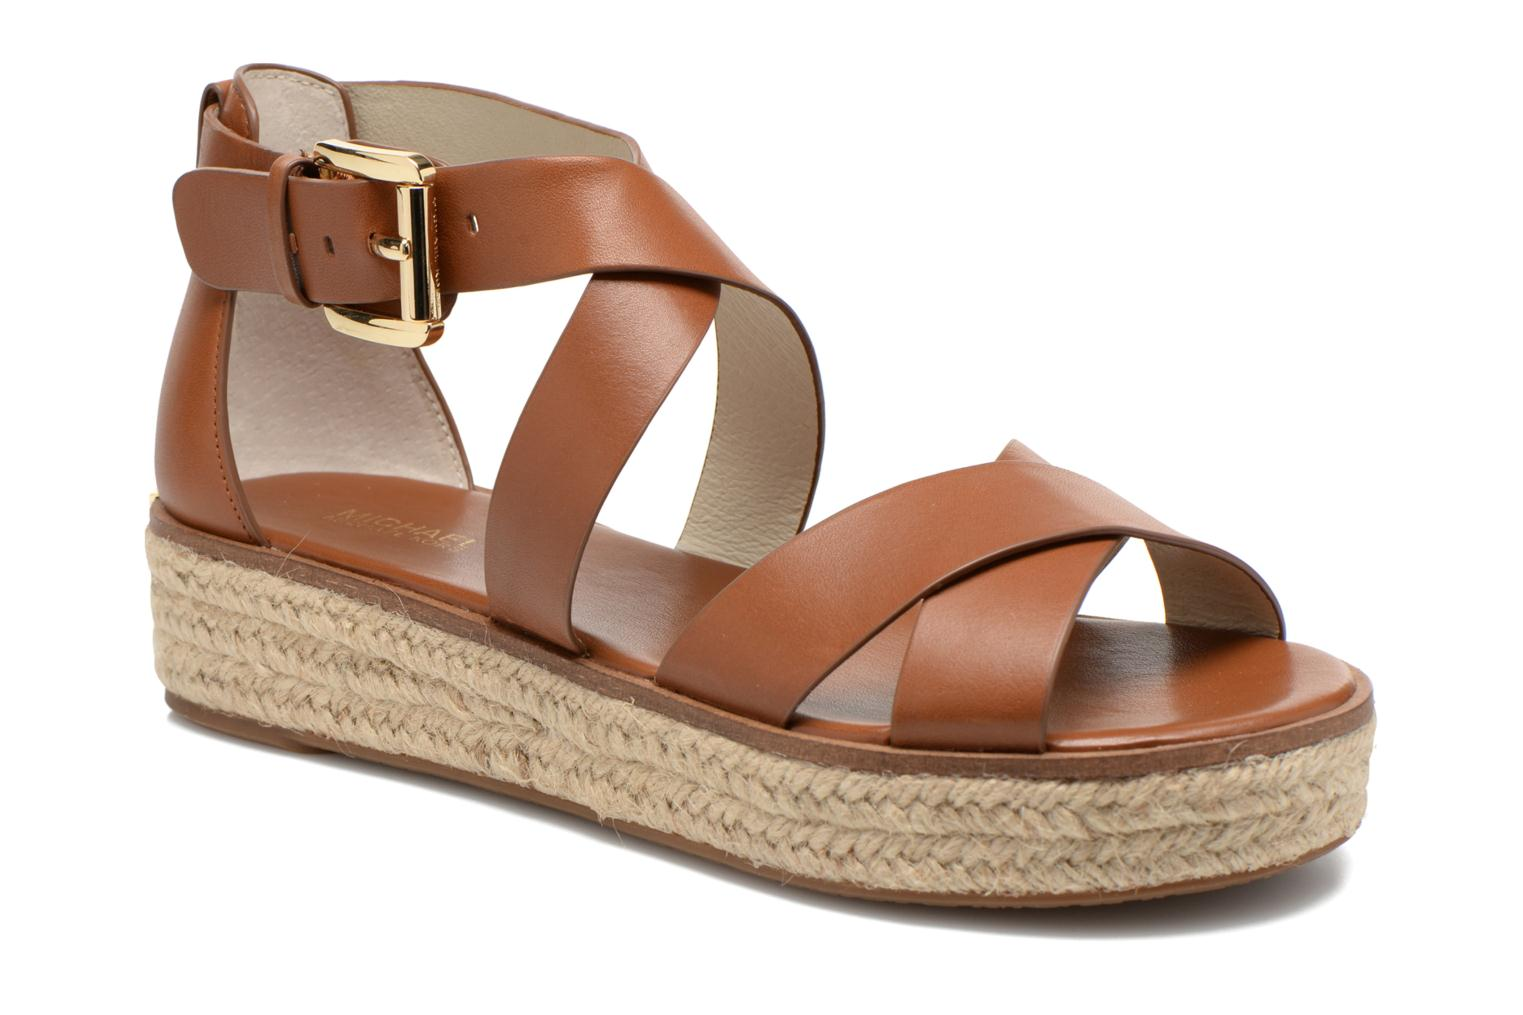 Sandales Marron Darby Michael Kors HLRXCKLY